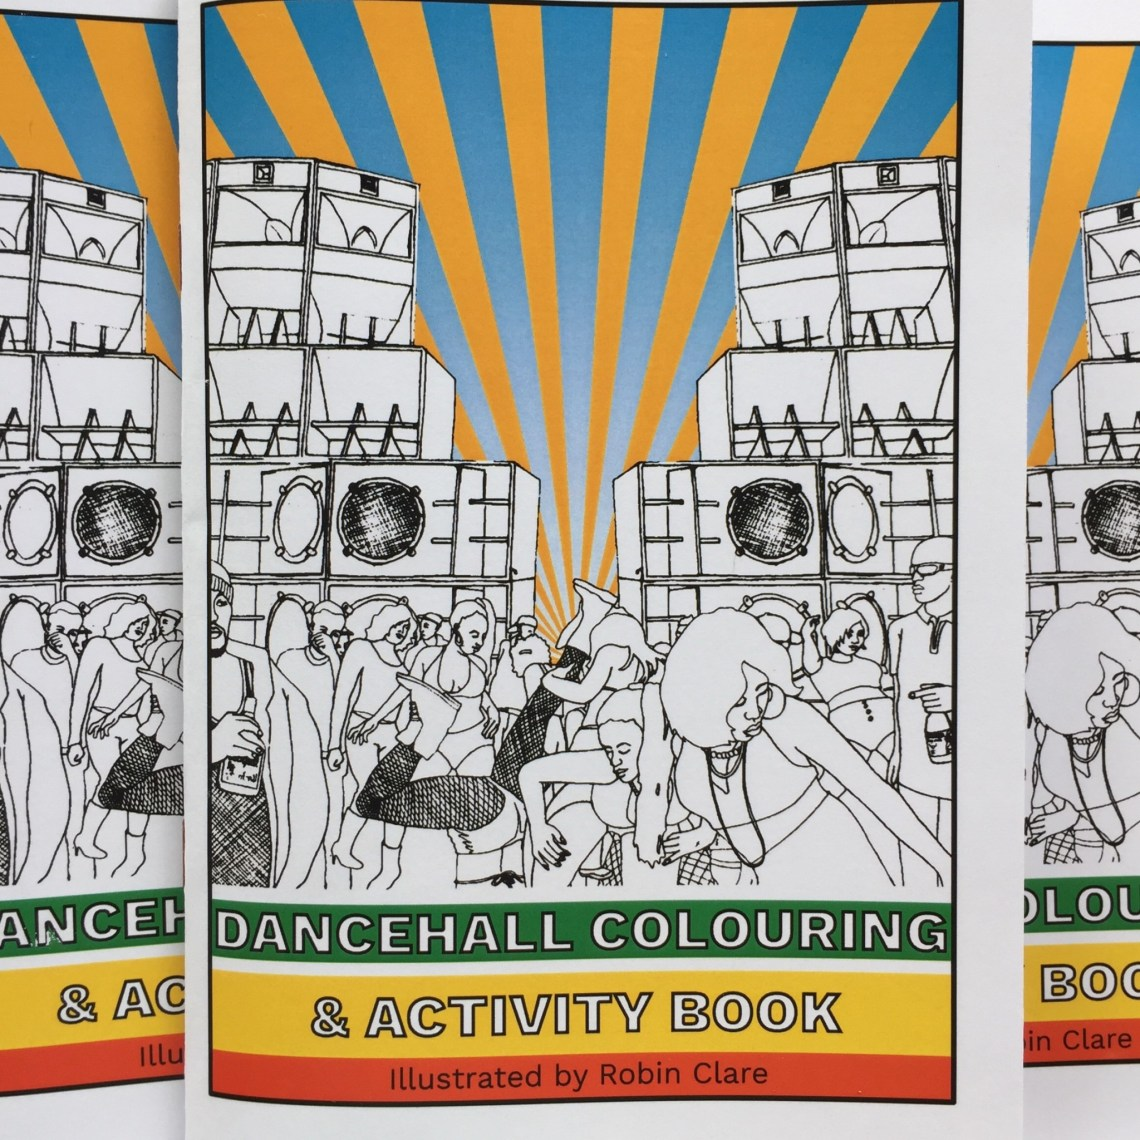 dancehall-colouring-activity-book